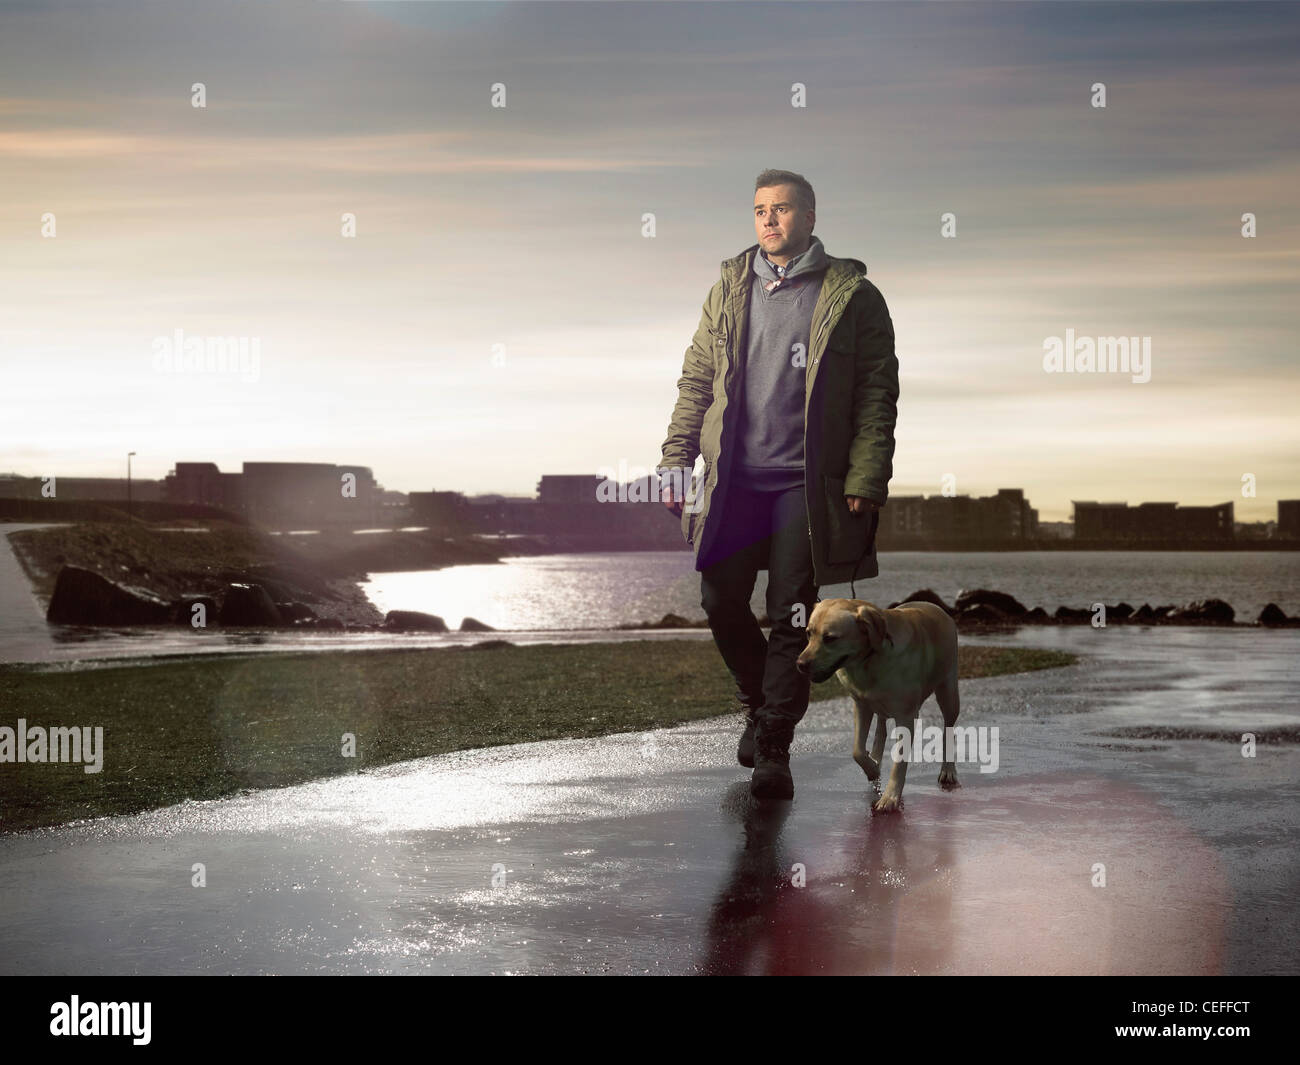 Man walking dog on wet road - Stock Image